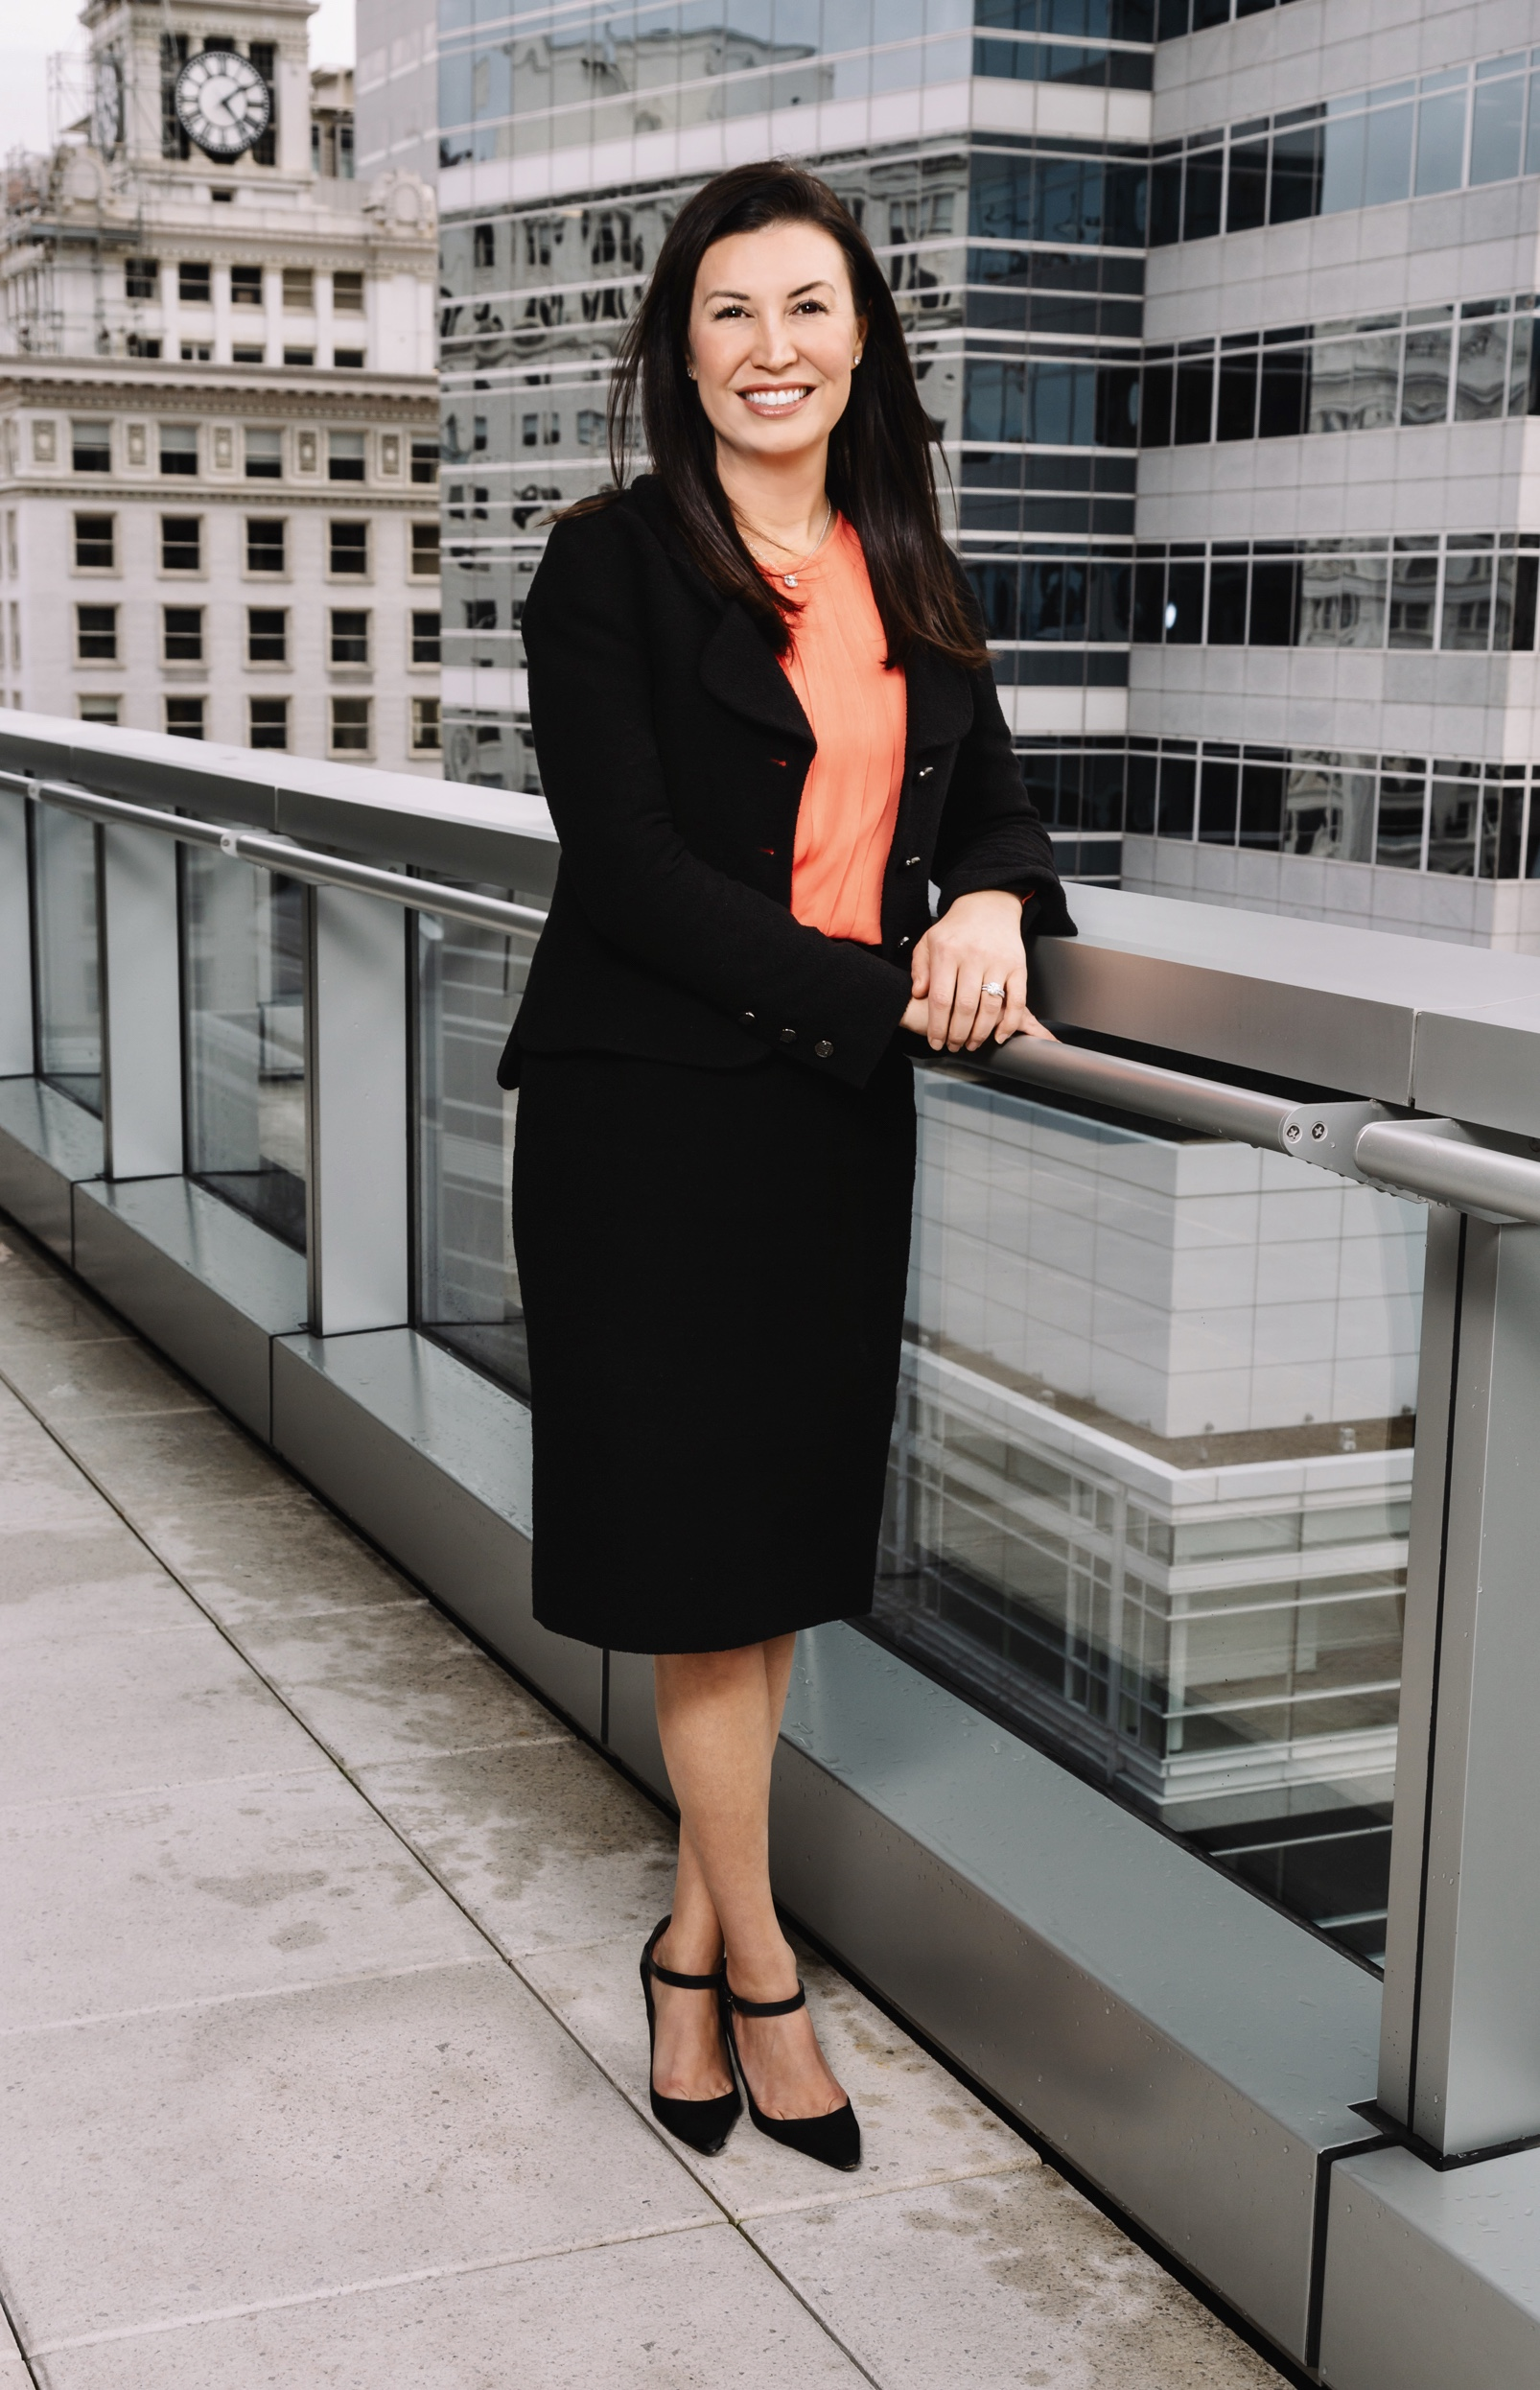 TMT President and CEO Vanessa Sturgeon is among Portland Monthly's Women Who Move the City.